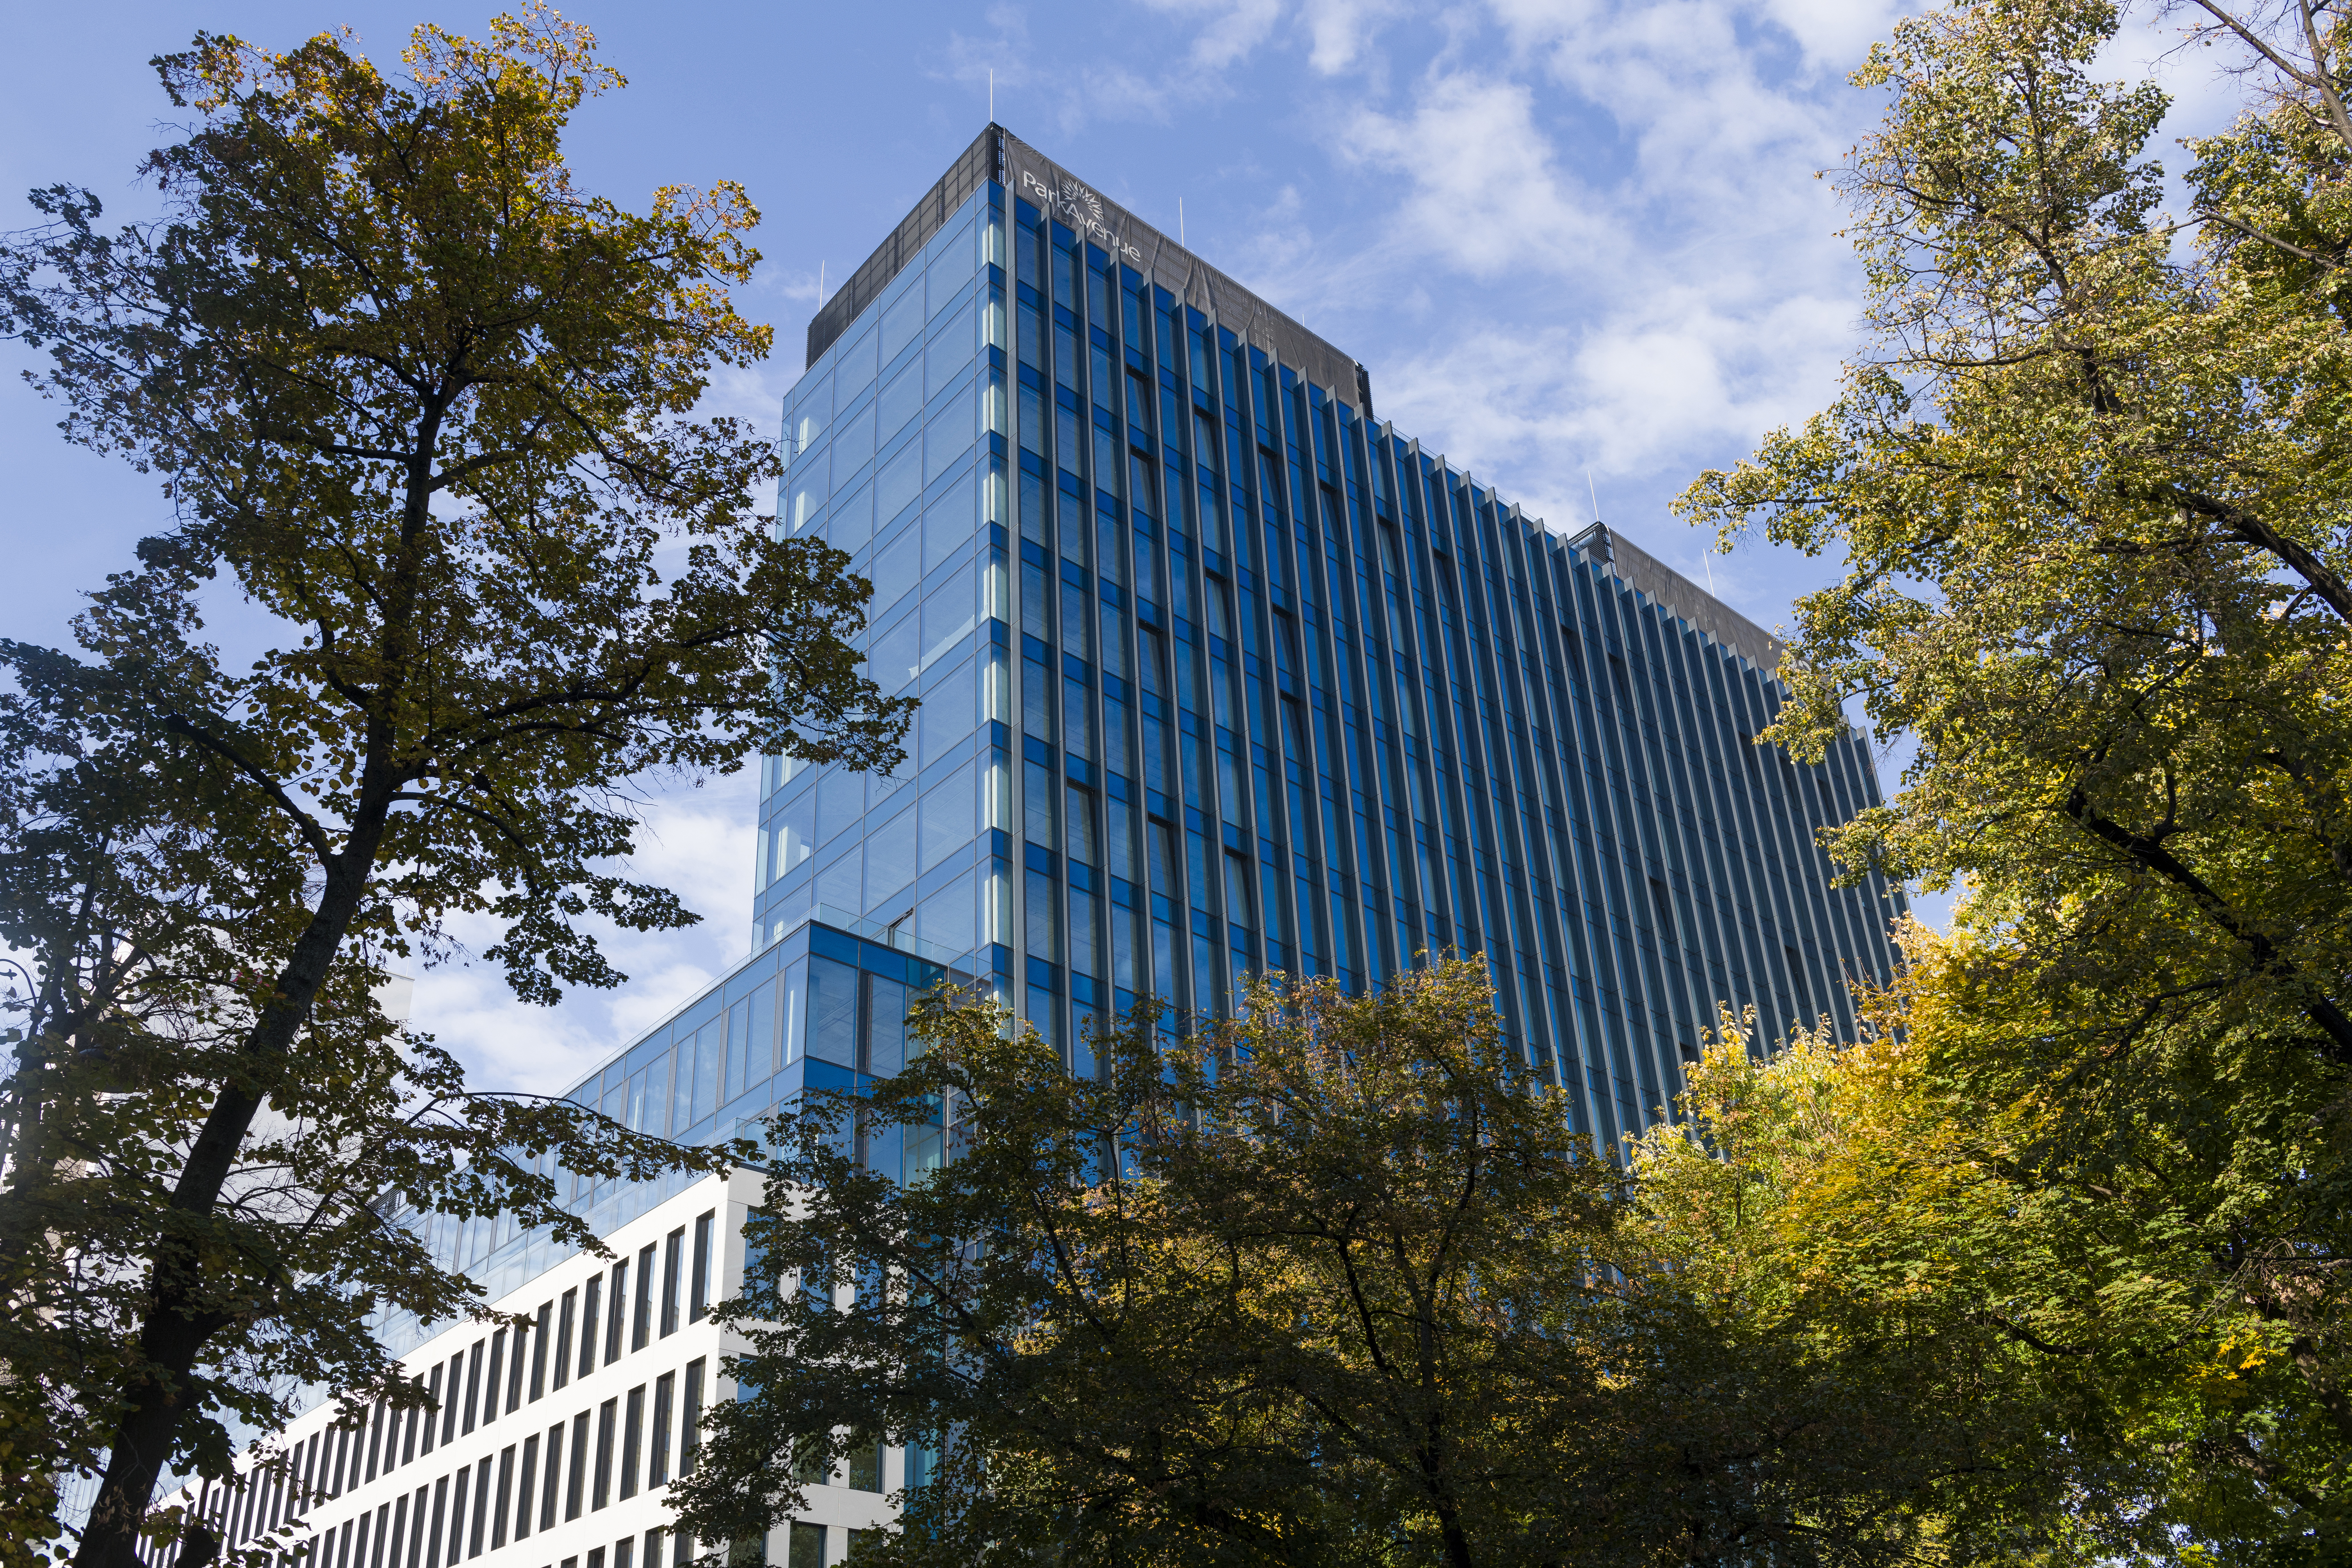 WICONA aluminium systems combine flexibility with high performance at Park Avenue in Warsaw